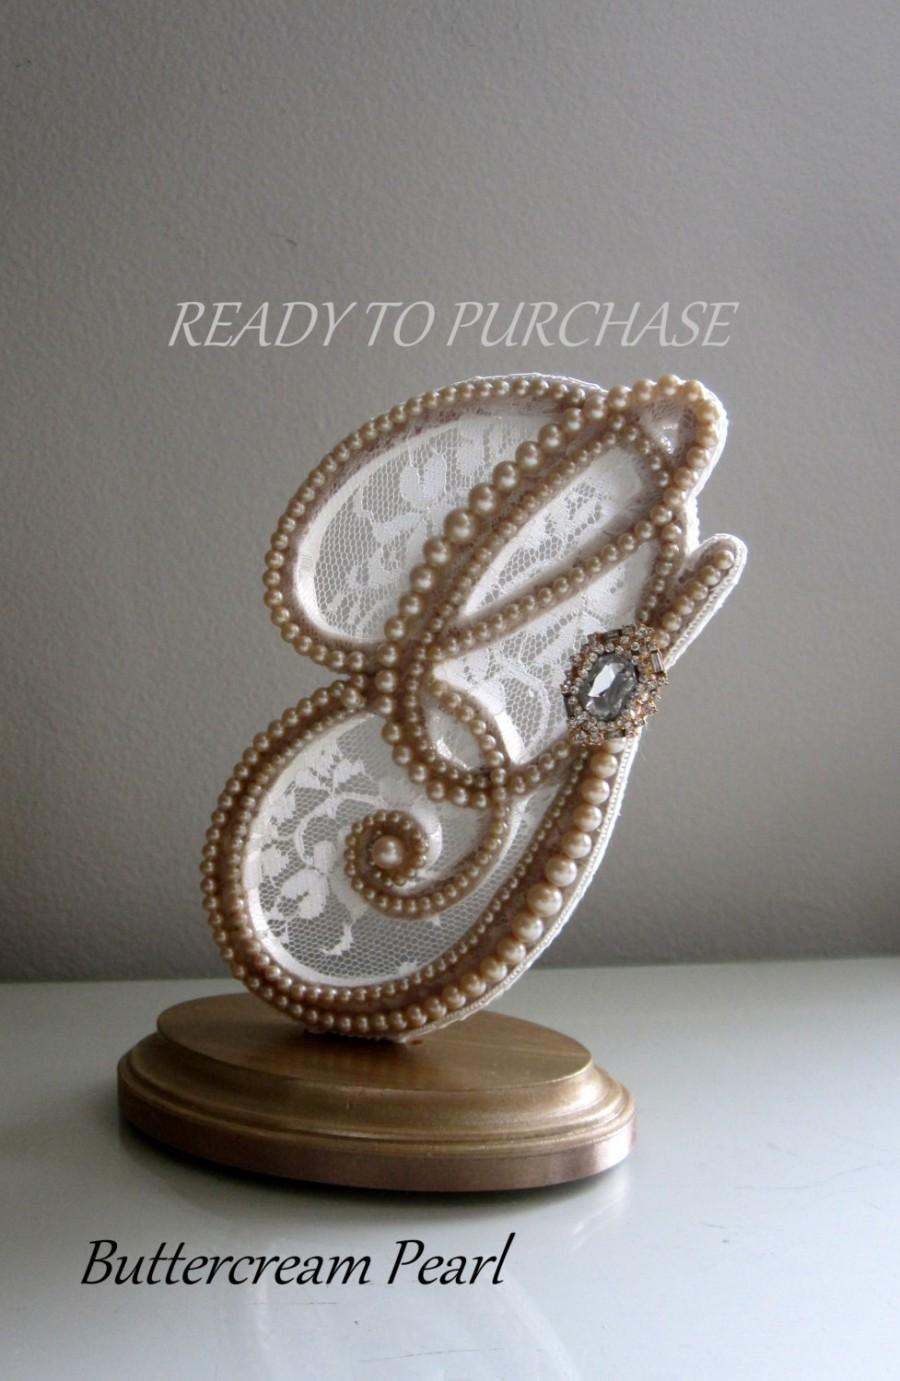 Mariage - Keepsake Cake Topper Monogram Letter G//Vintage Pearl & Ivory Lace// Rustic, Shabby Chic, Beach// Bridal Shower Gift//Ready to Purchase